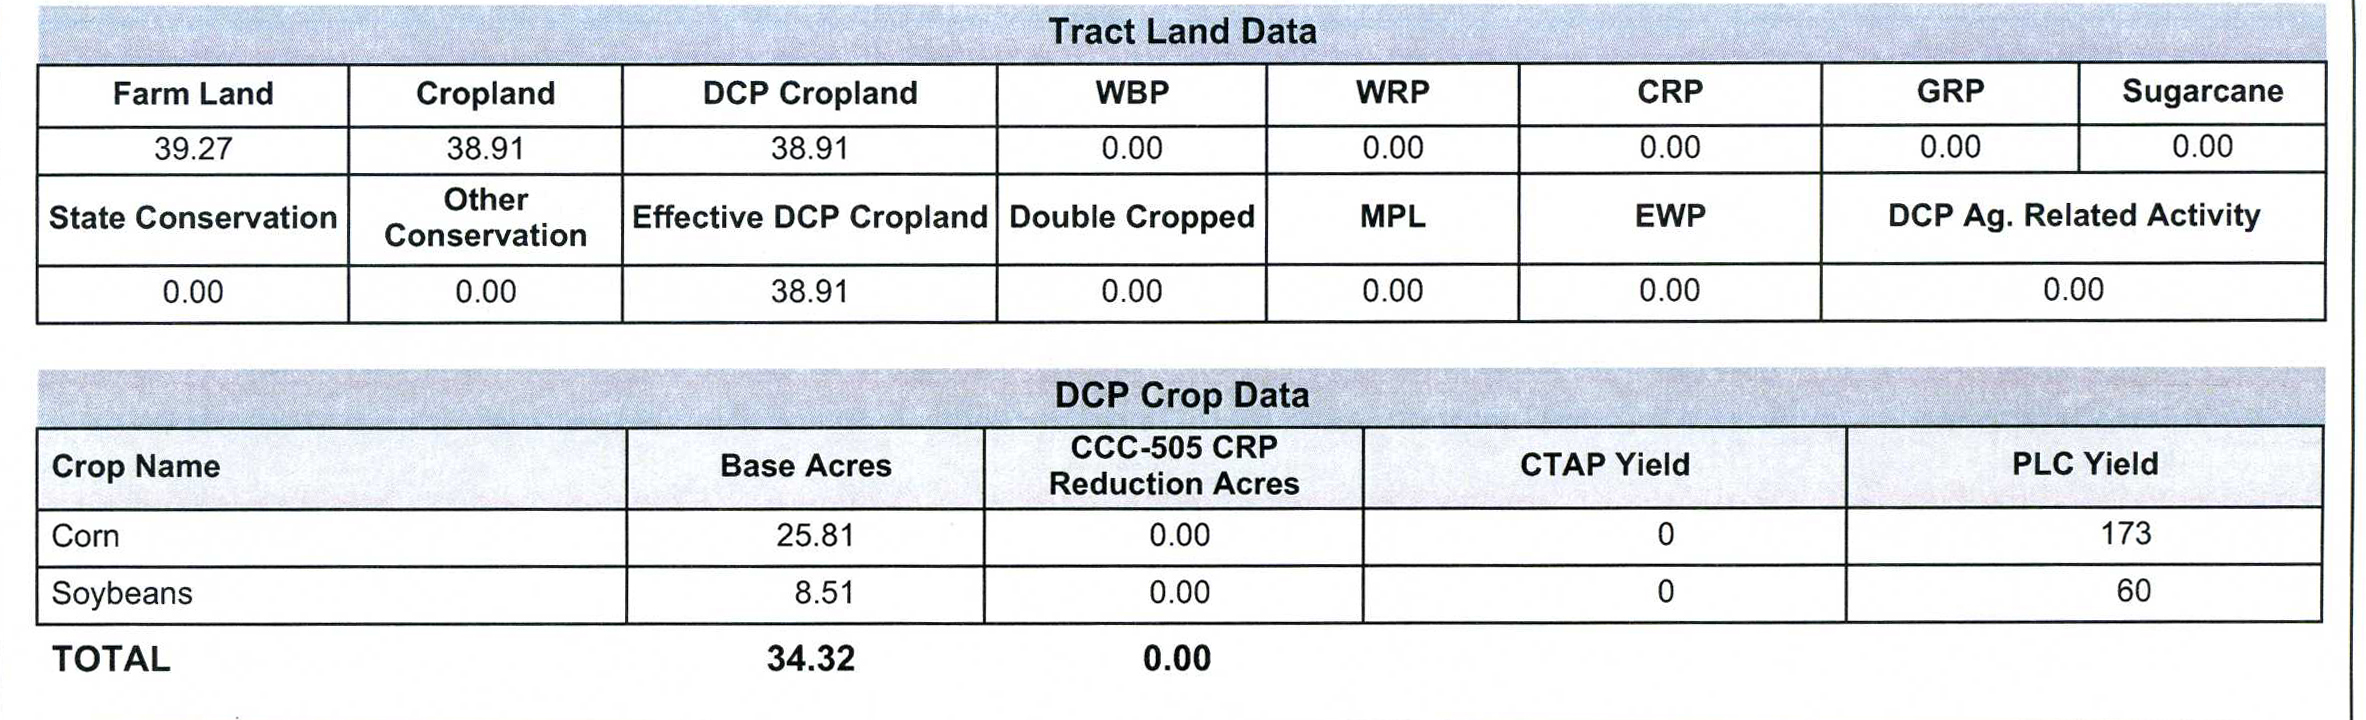 Crop Tract 1